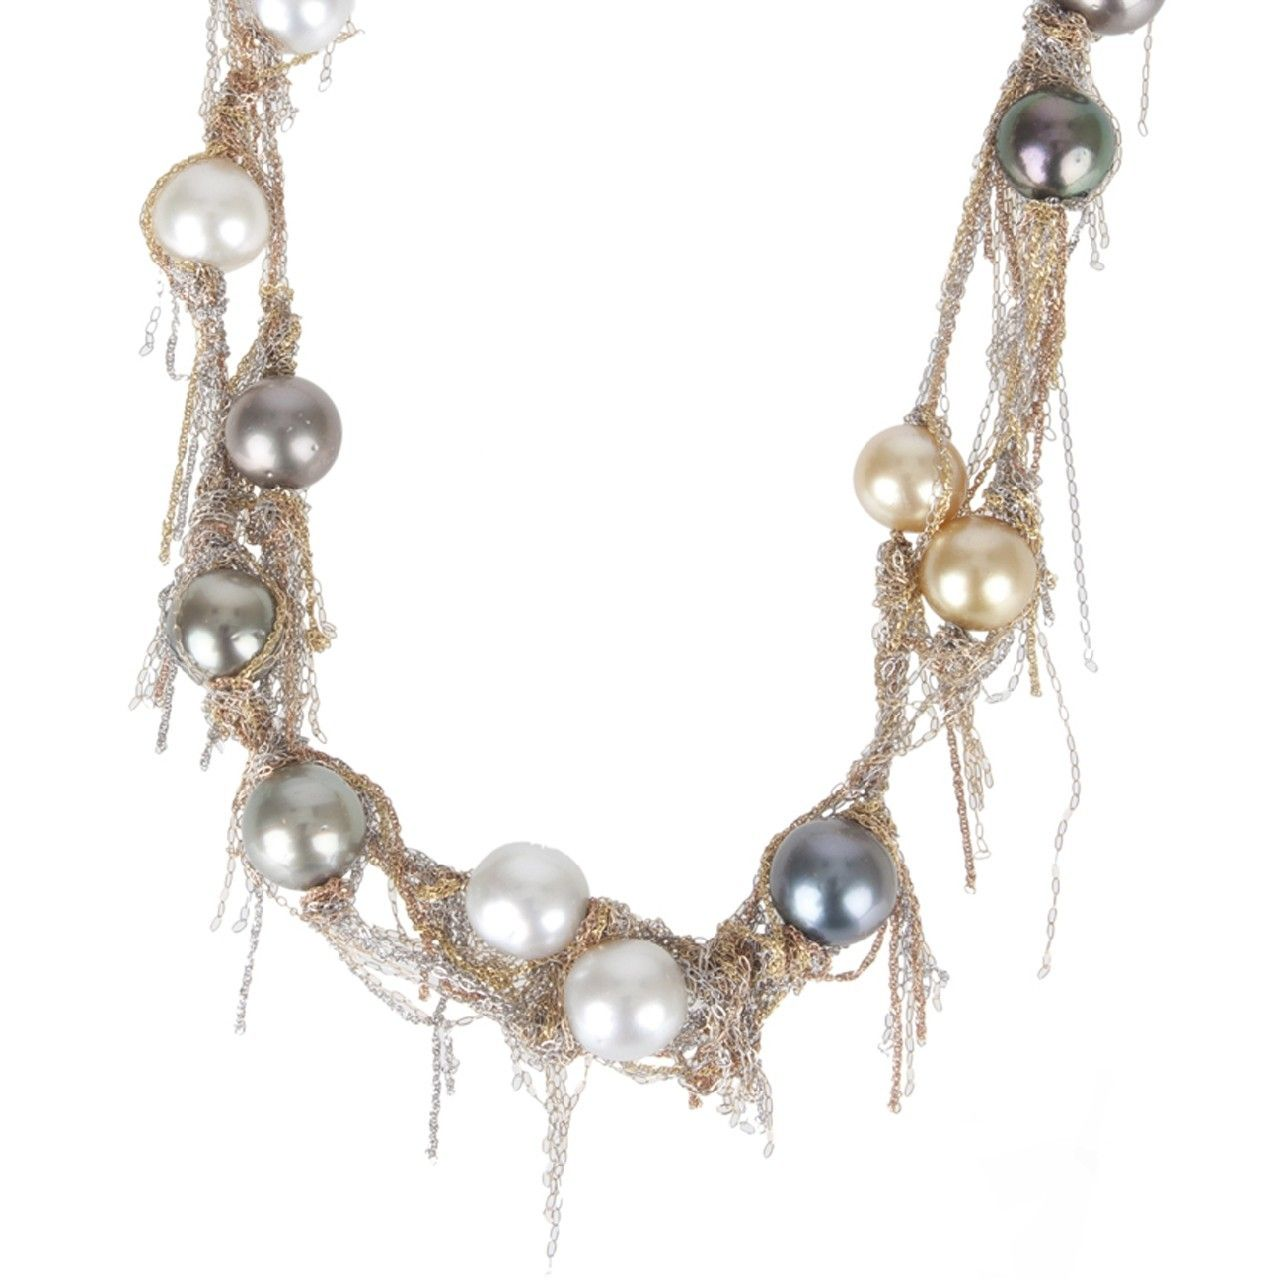 Hirshleifers - Martin Bernstein - Tahitian South Sea Pearl Necklace (Silver/Gold/Pearl), $5,950.00 (http://www.hirshleifers.com/jewelry/fine-jewelry/necklaces/martin-bernstein-tahitian-south-sea-pearl-necklace-silver-gold-pearl/)